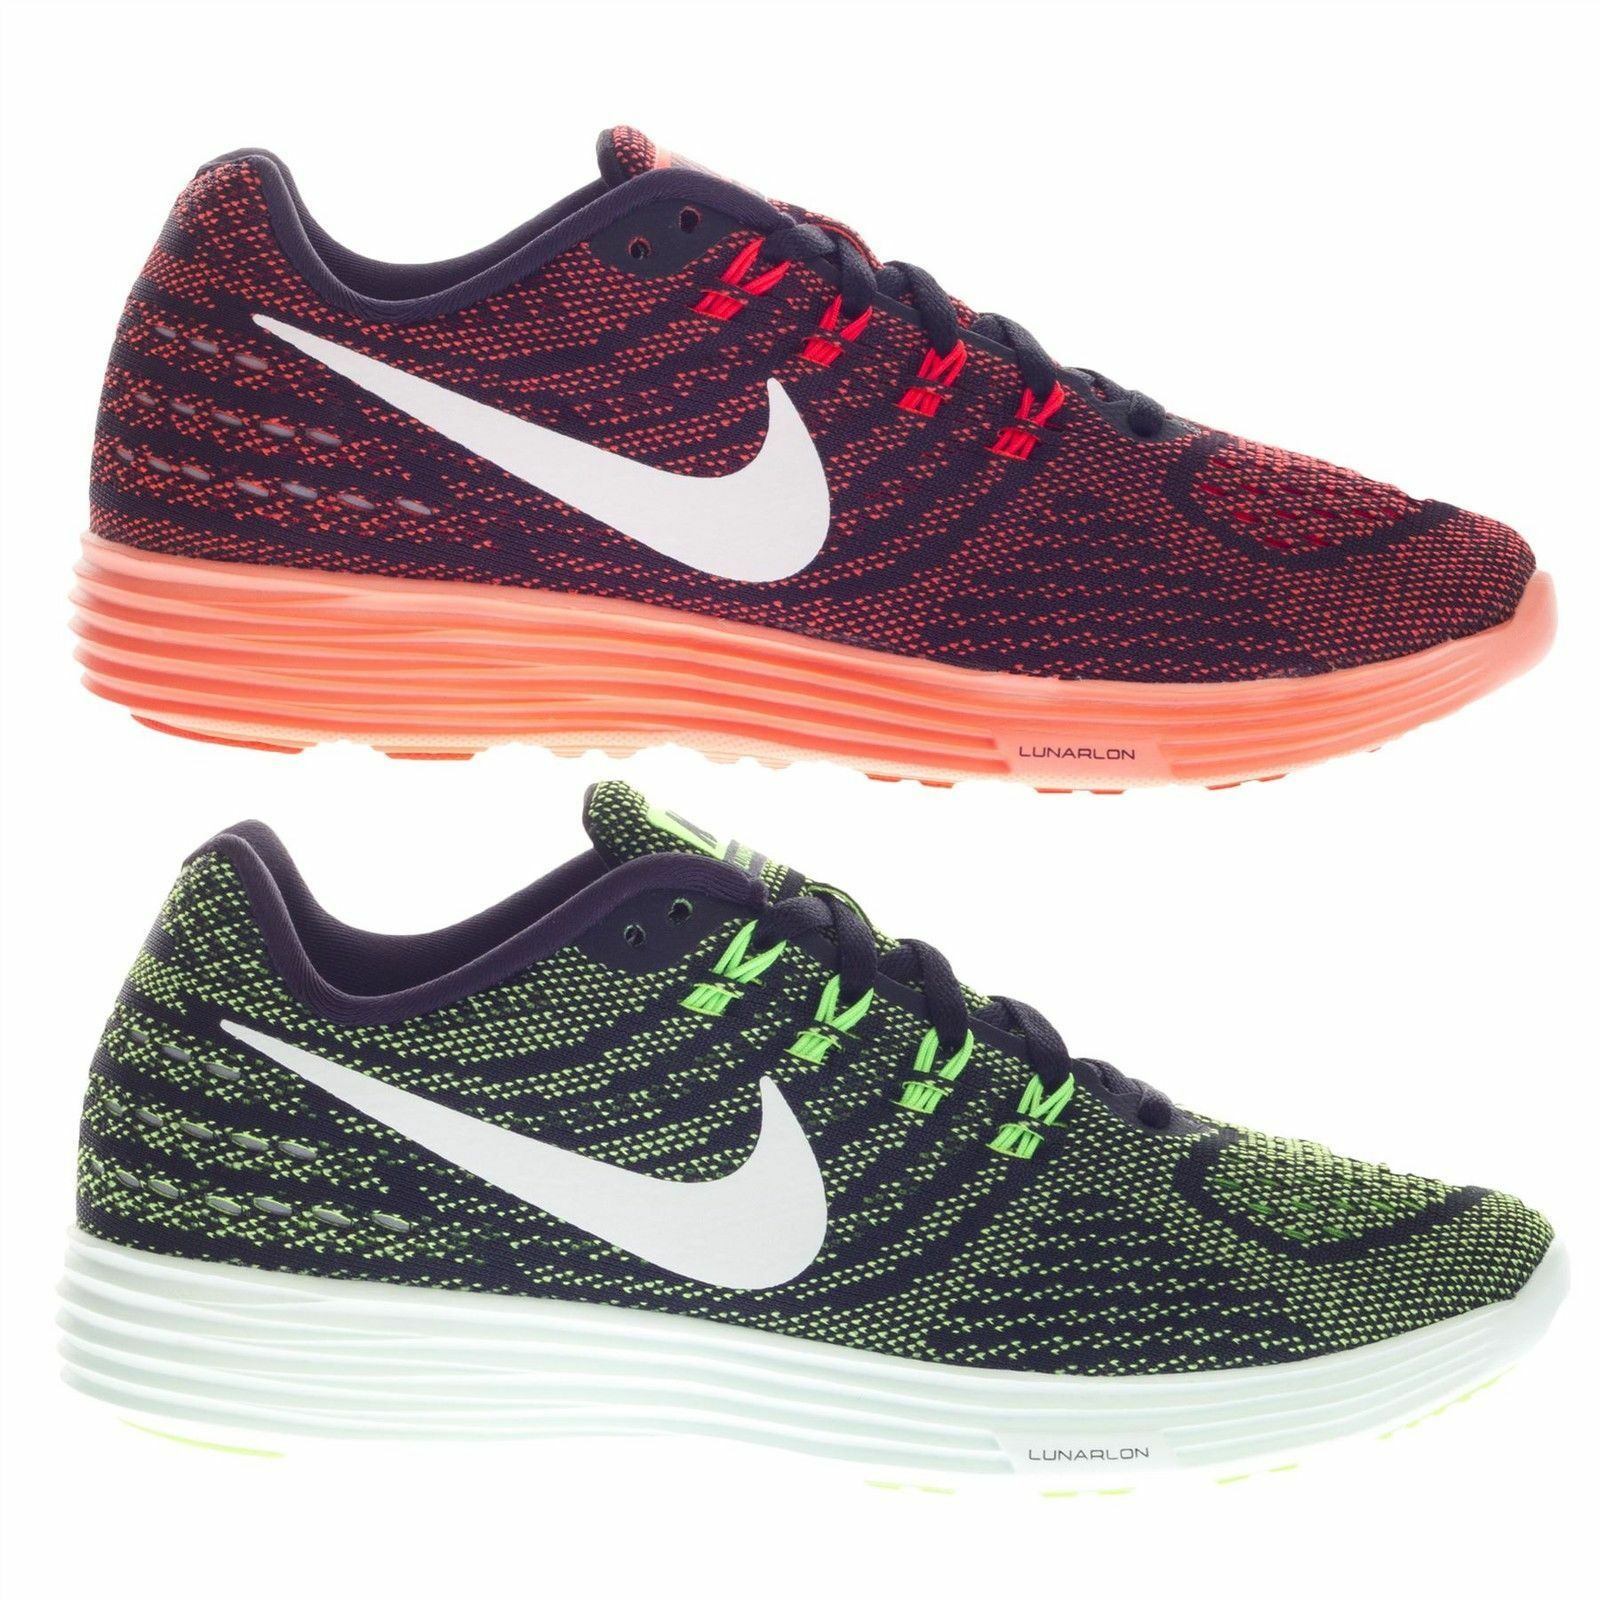 best sneakers ab922 c0d8a ... tenis deportivos zapatos de mujer ni010sh72osxco 61074 49e4b  closeout nike  mujeres lunartempo 2 activo low top gimnasio deporte ejecutar activo 2 ...